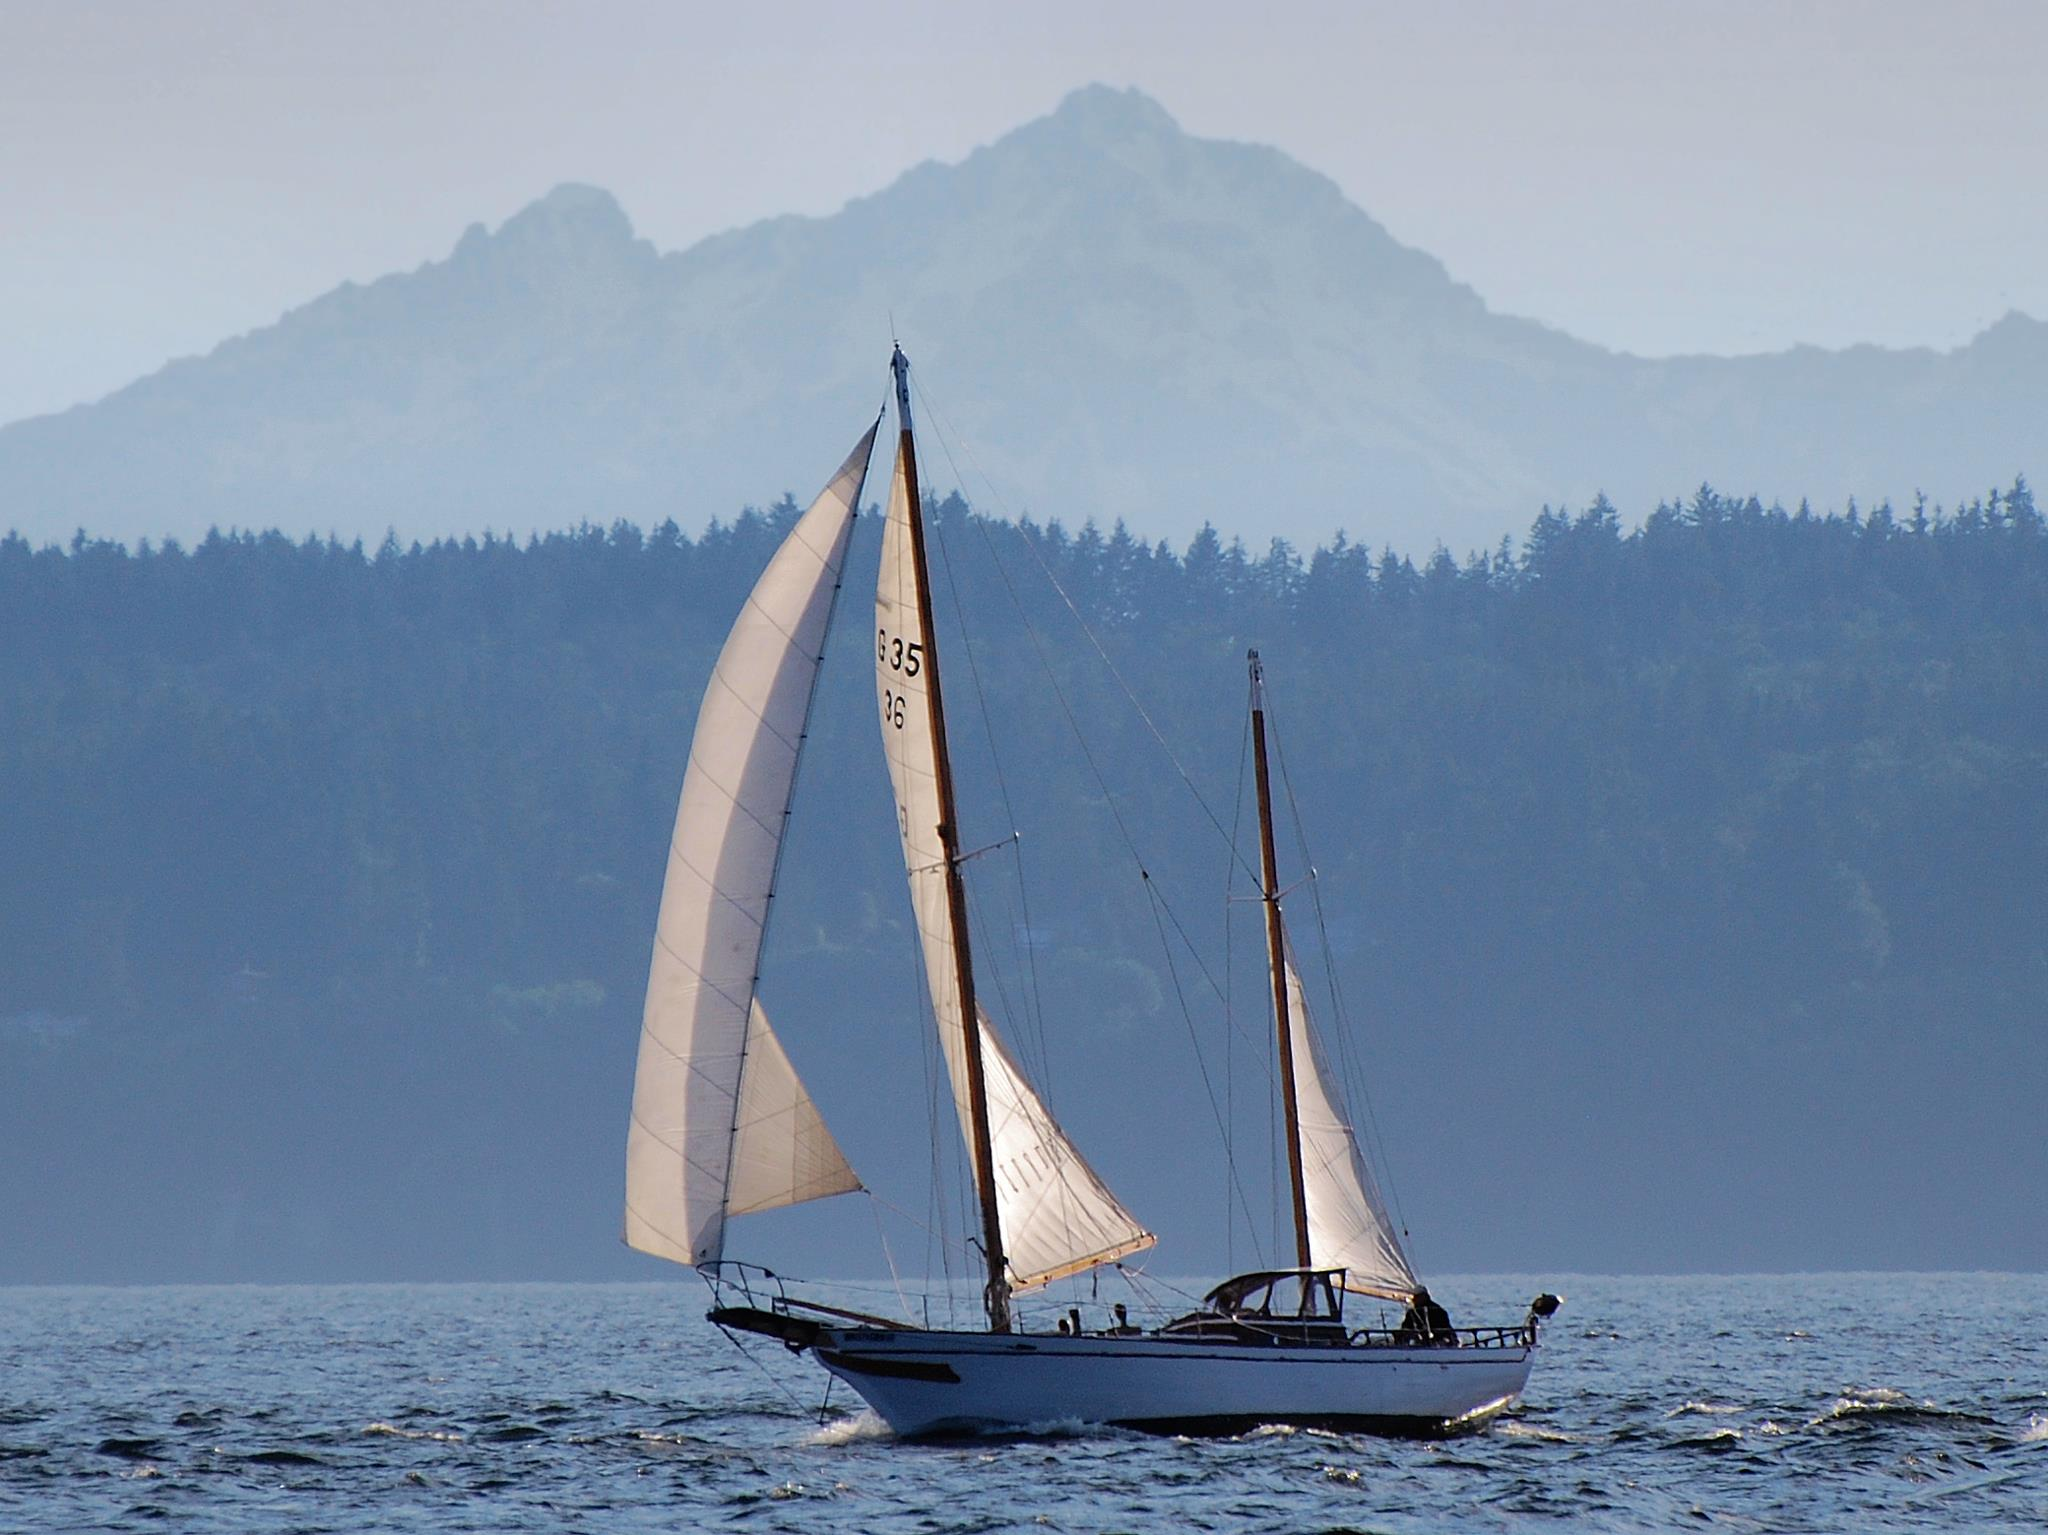 Pacific Northwest Boating Pacific Northwest J R Hudson 2048x1535